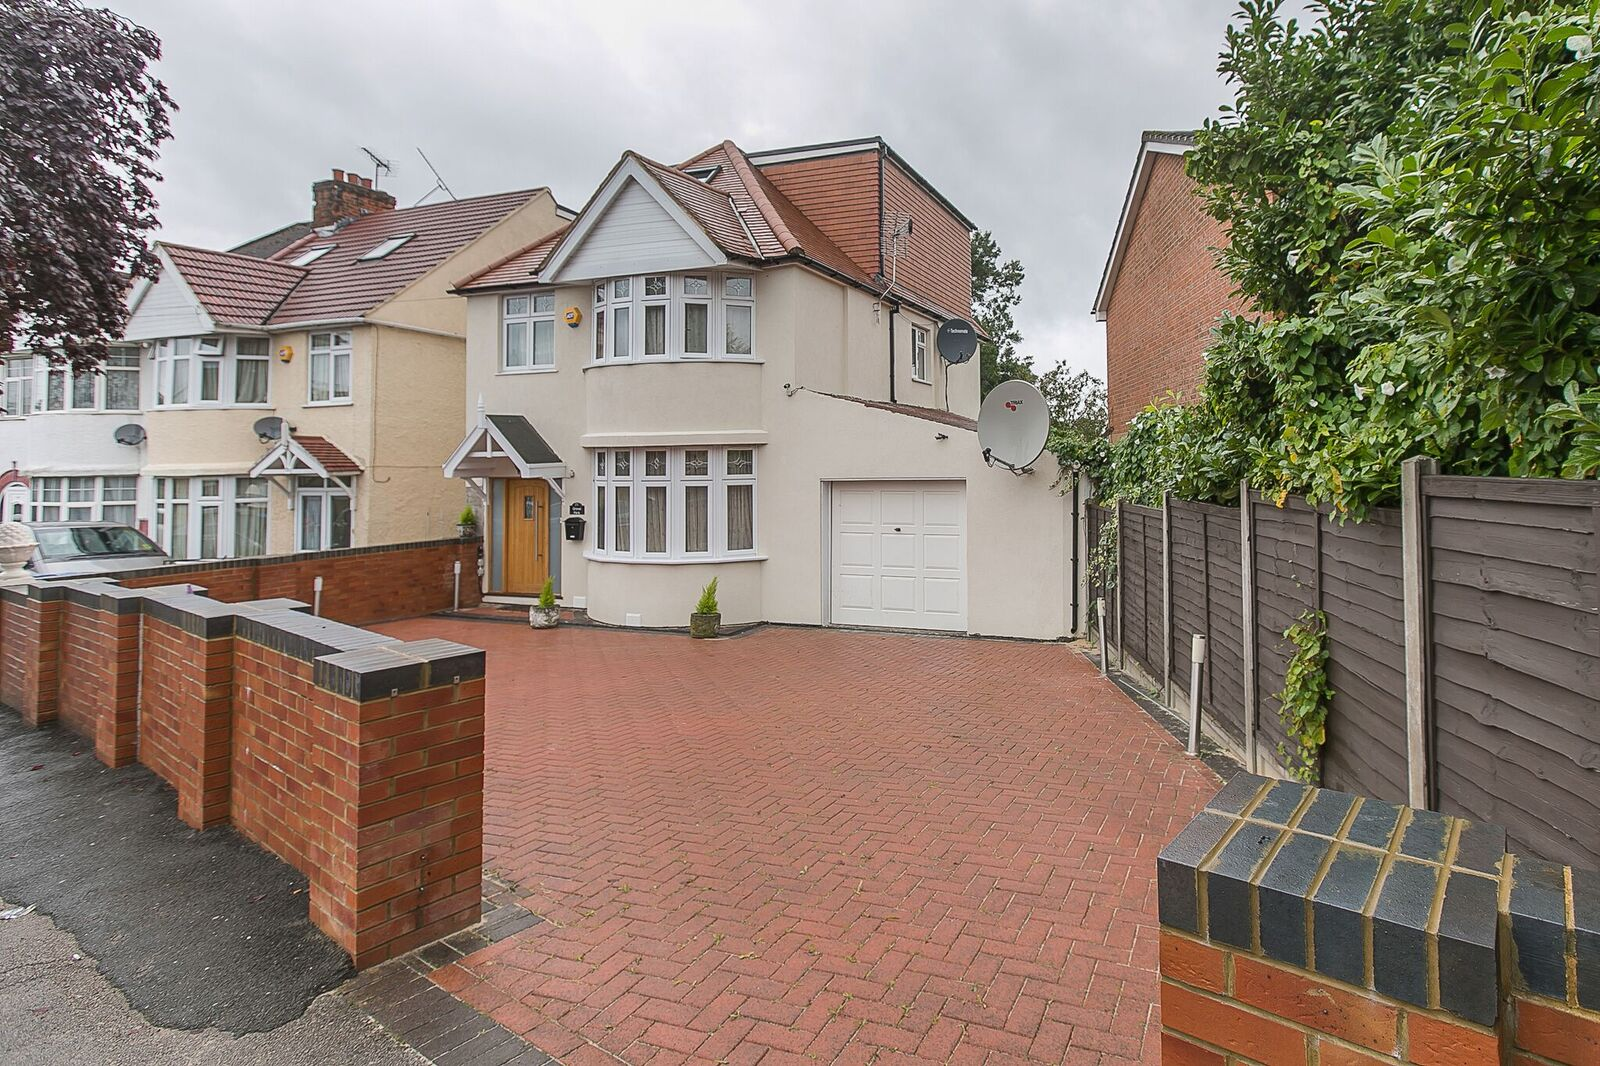 5 bedroom detached house for sale in grove park kingsbury for Grove park house